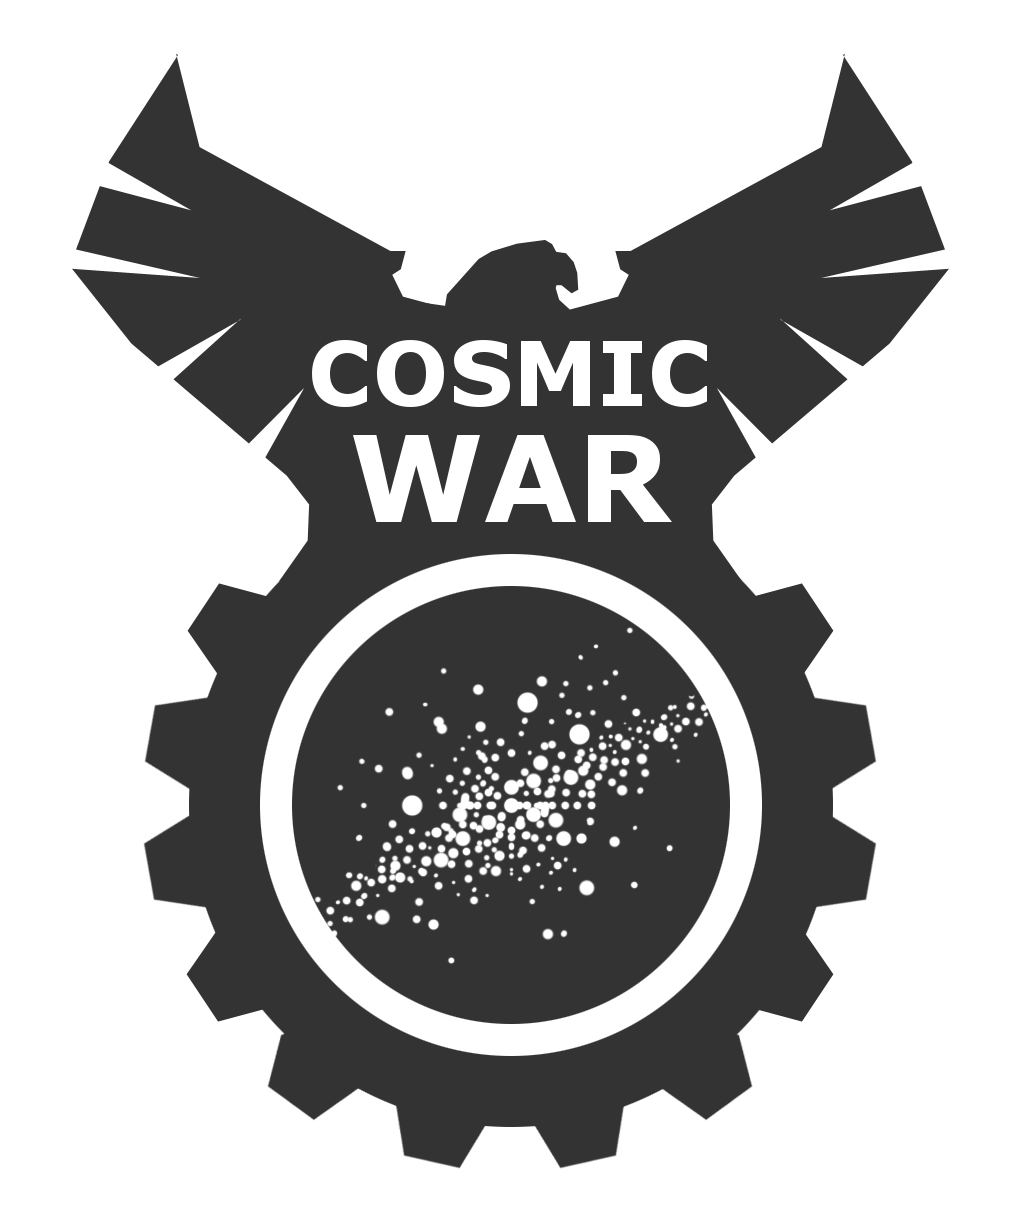 Cosmic War grey.png